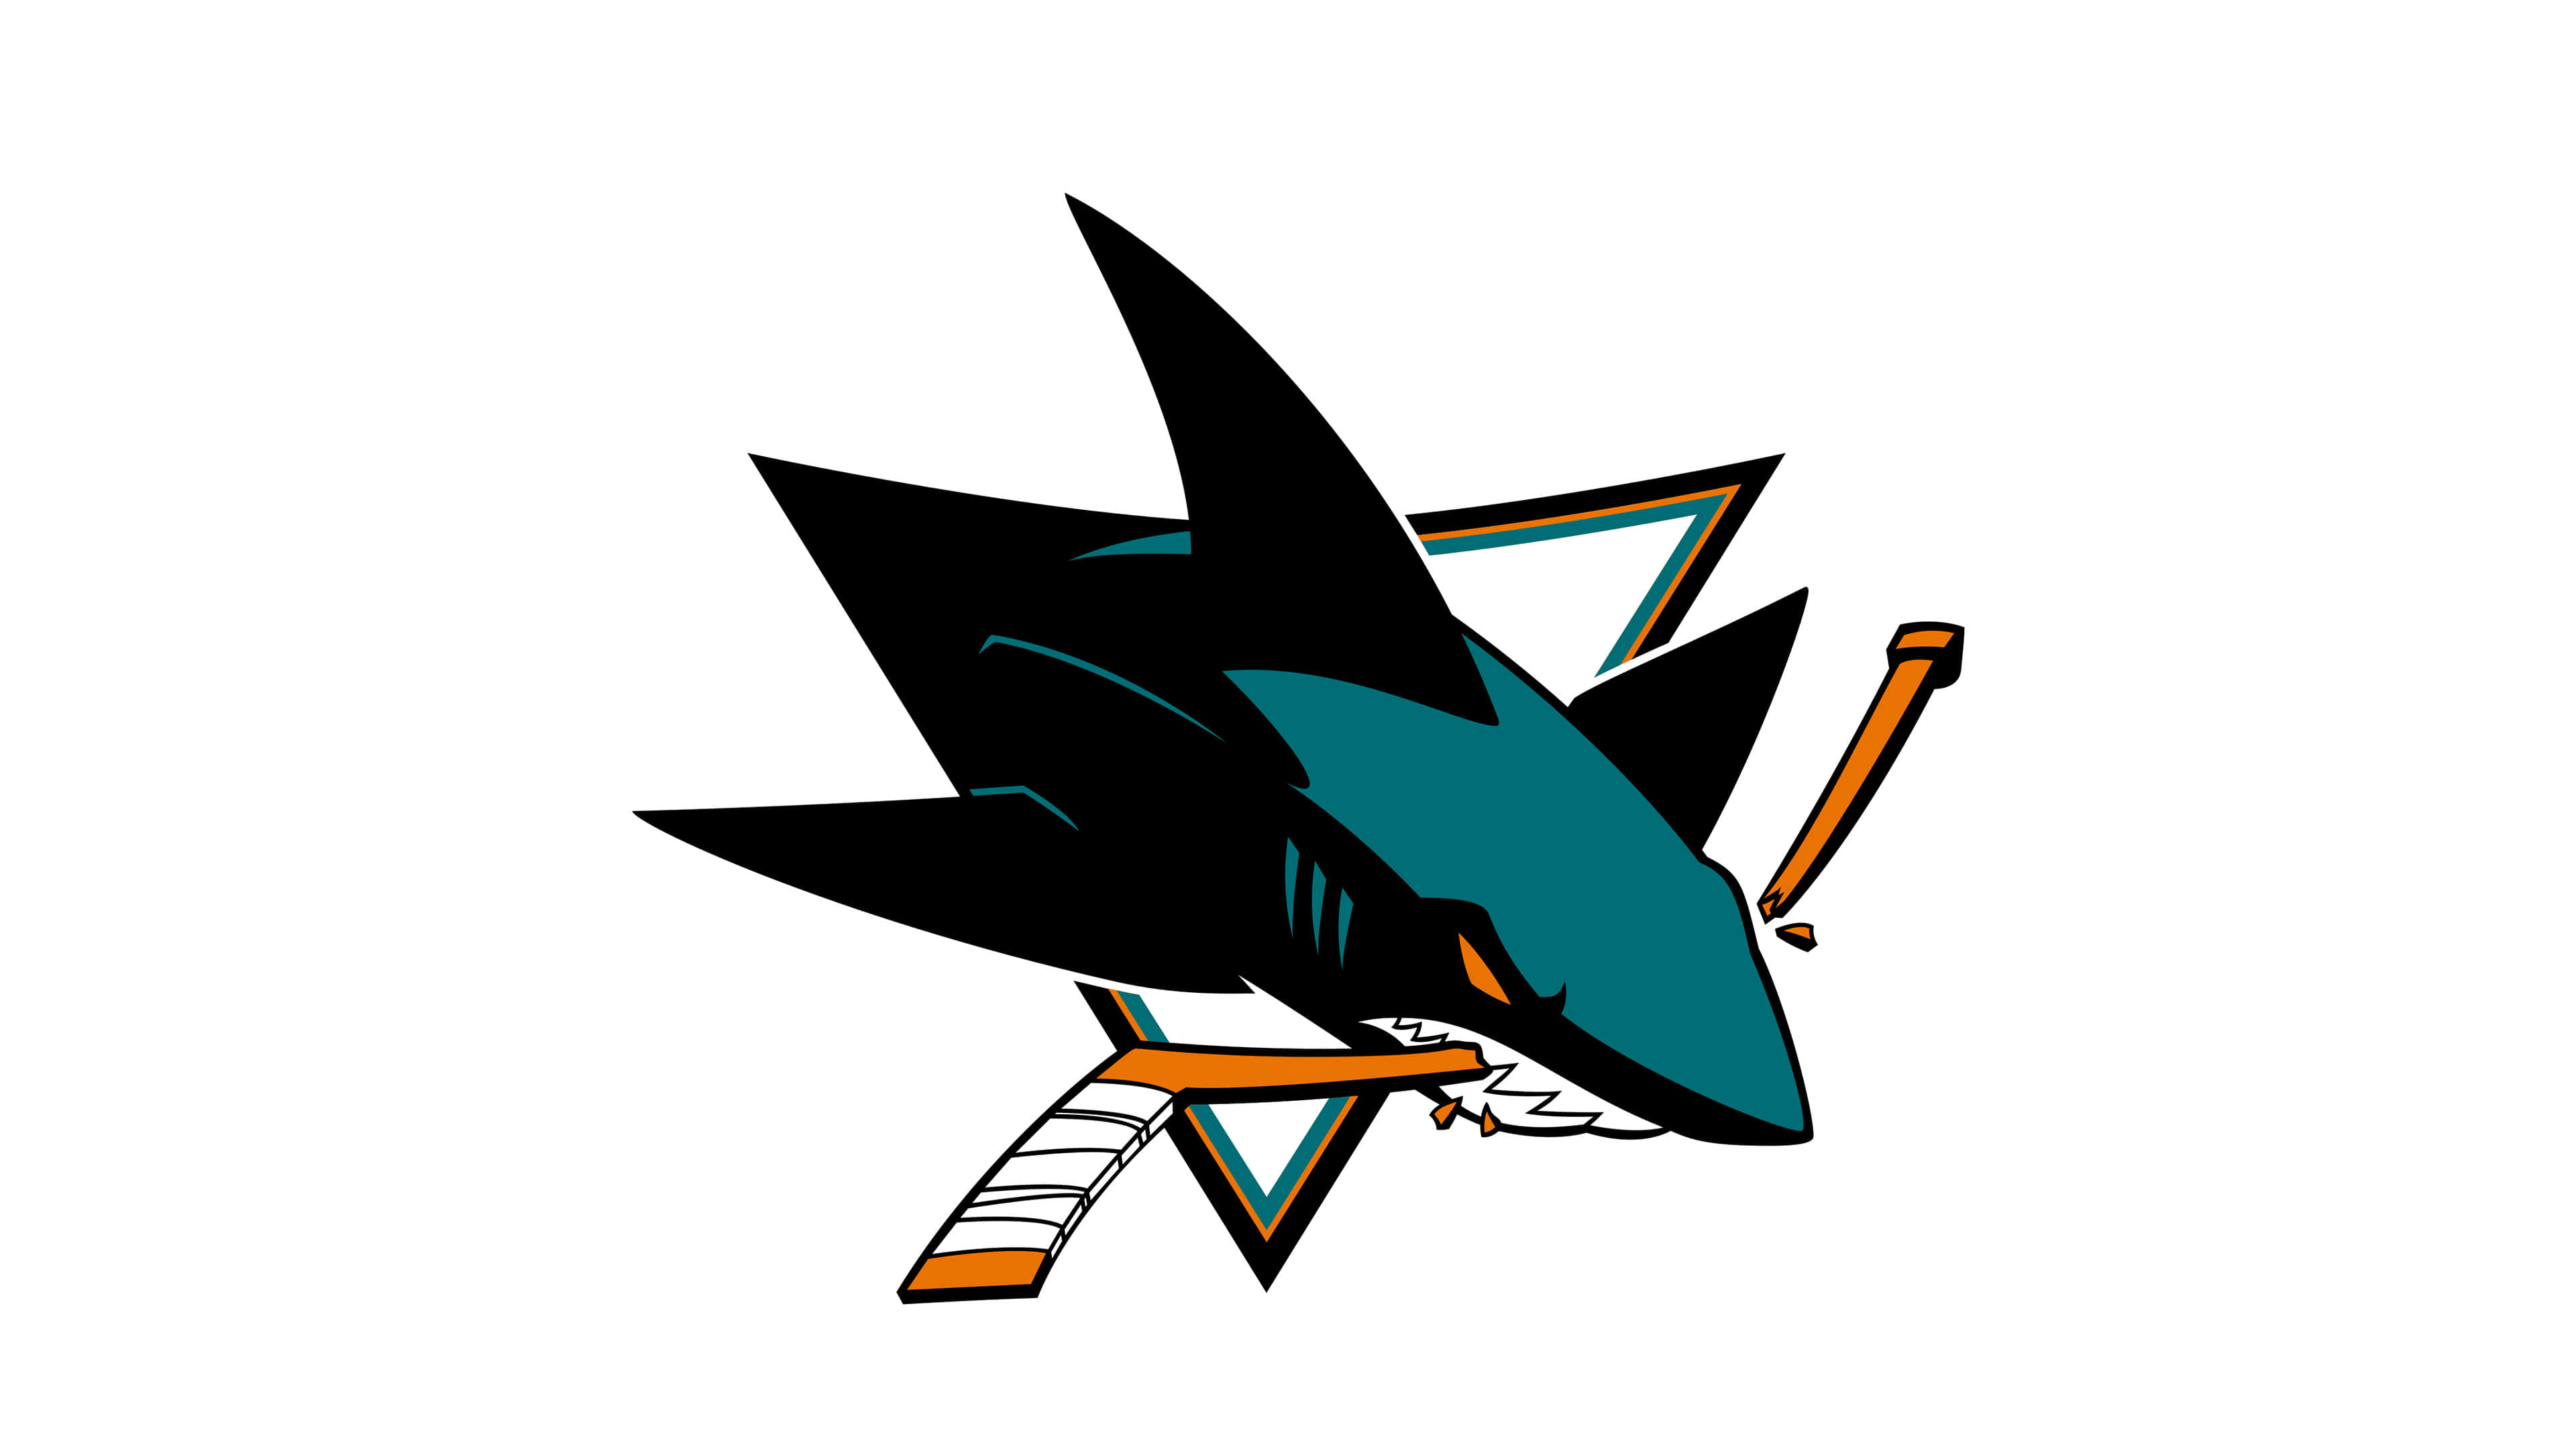 san jose sharks nhl logo uhd 4k wallpaper